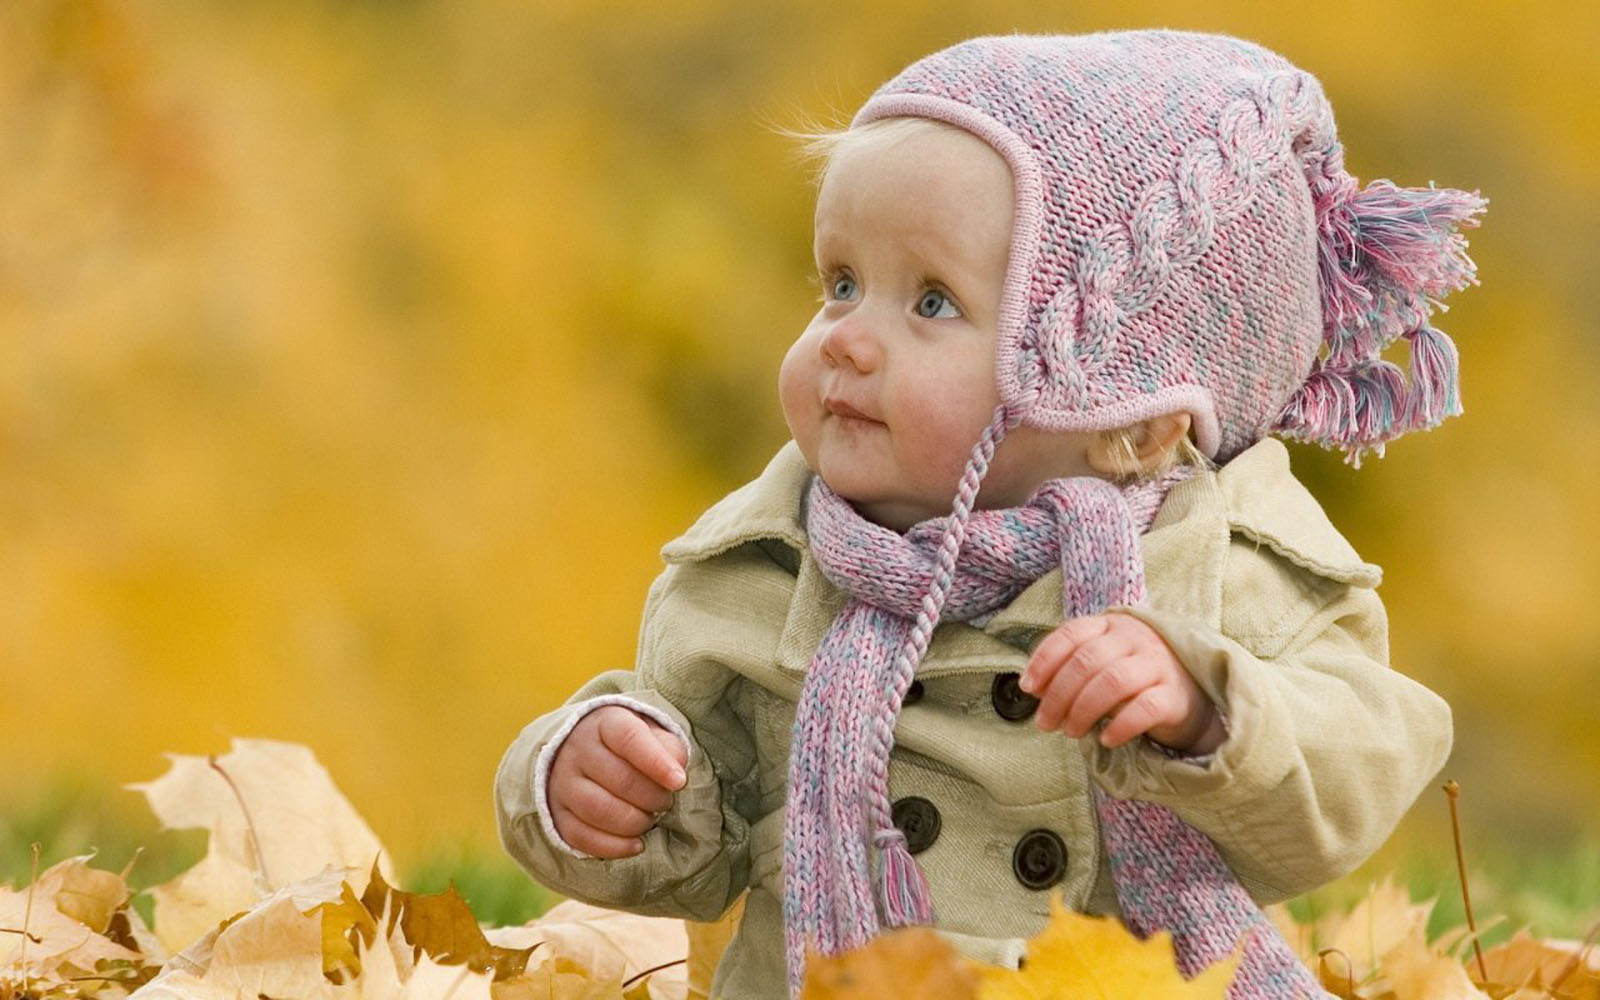 Cute babies hd wallpapers 1600x1000